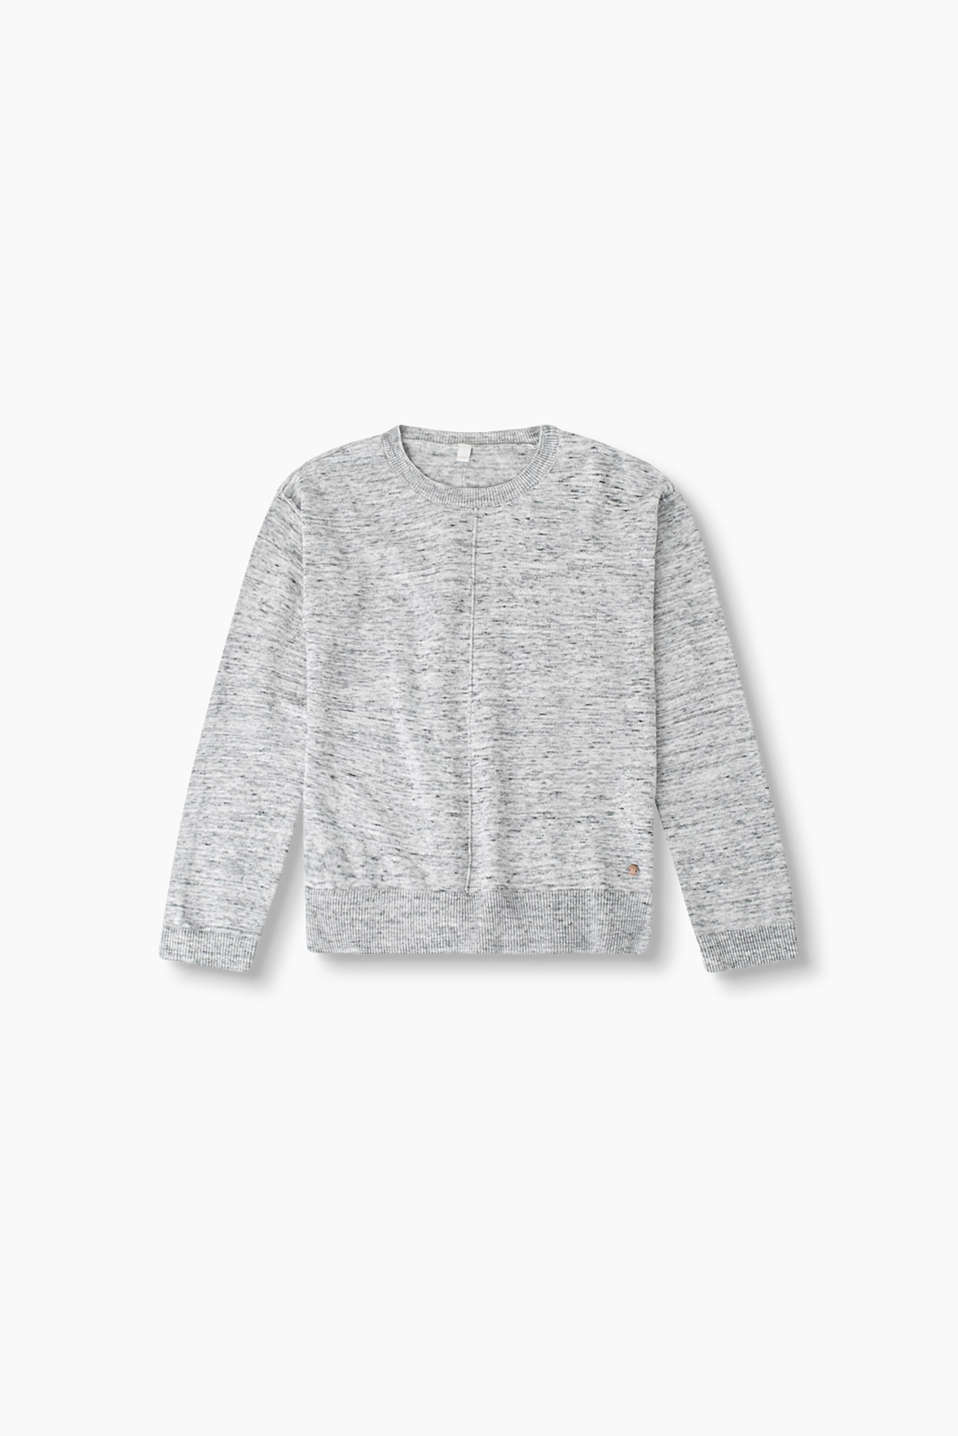 Casual melange jumper in a fine cotton knit